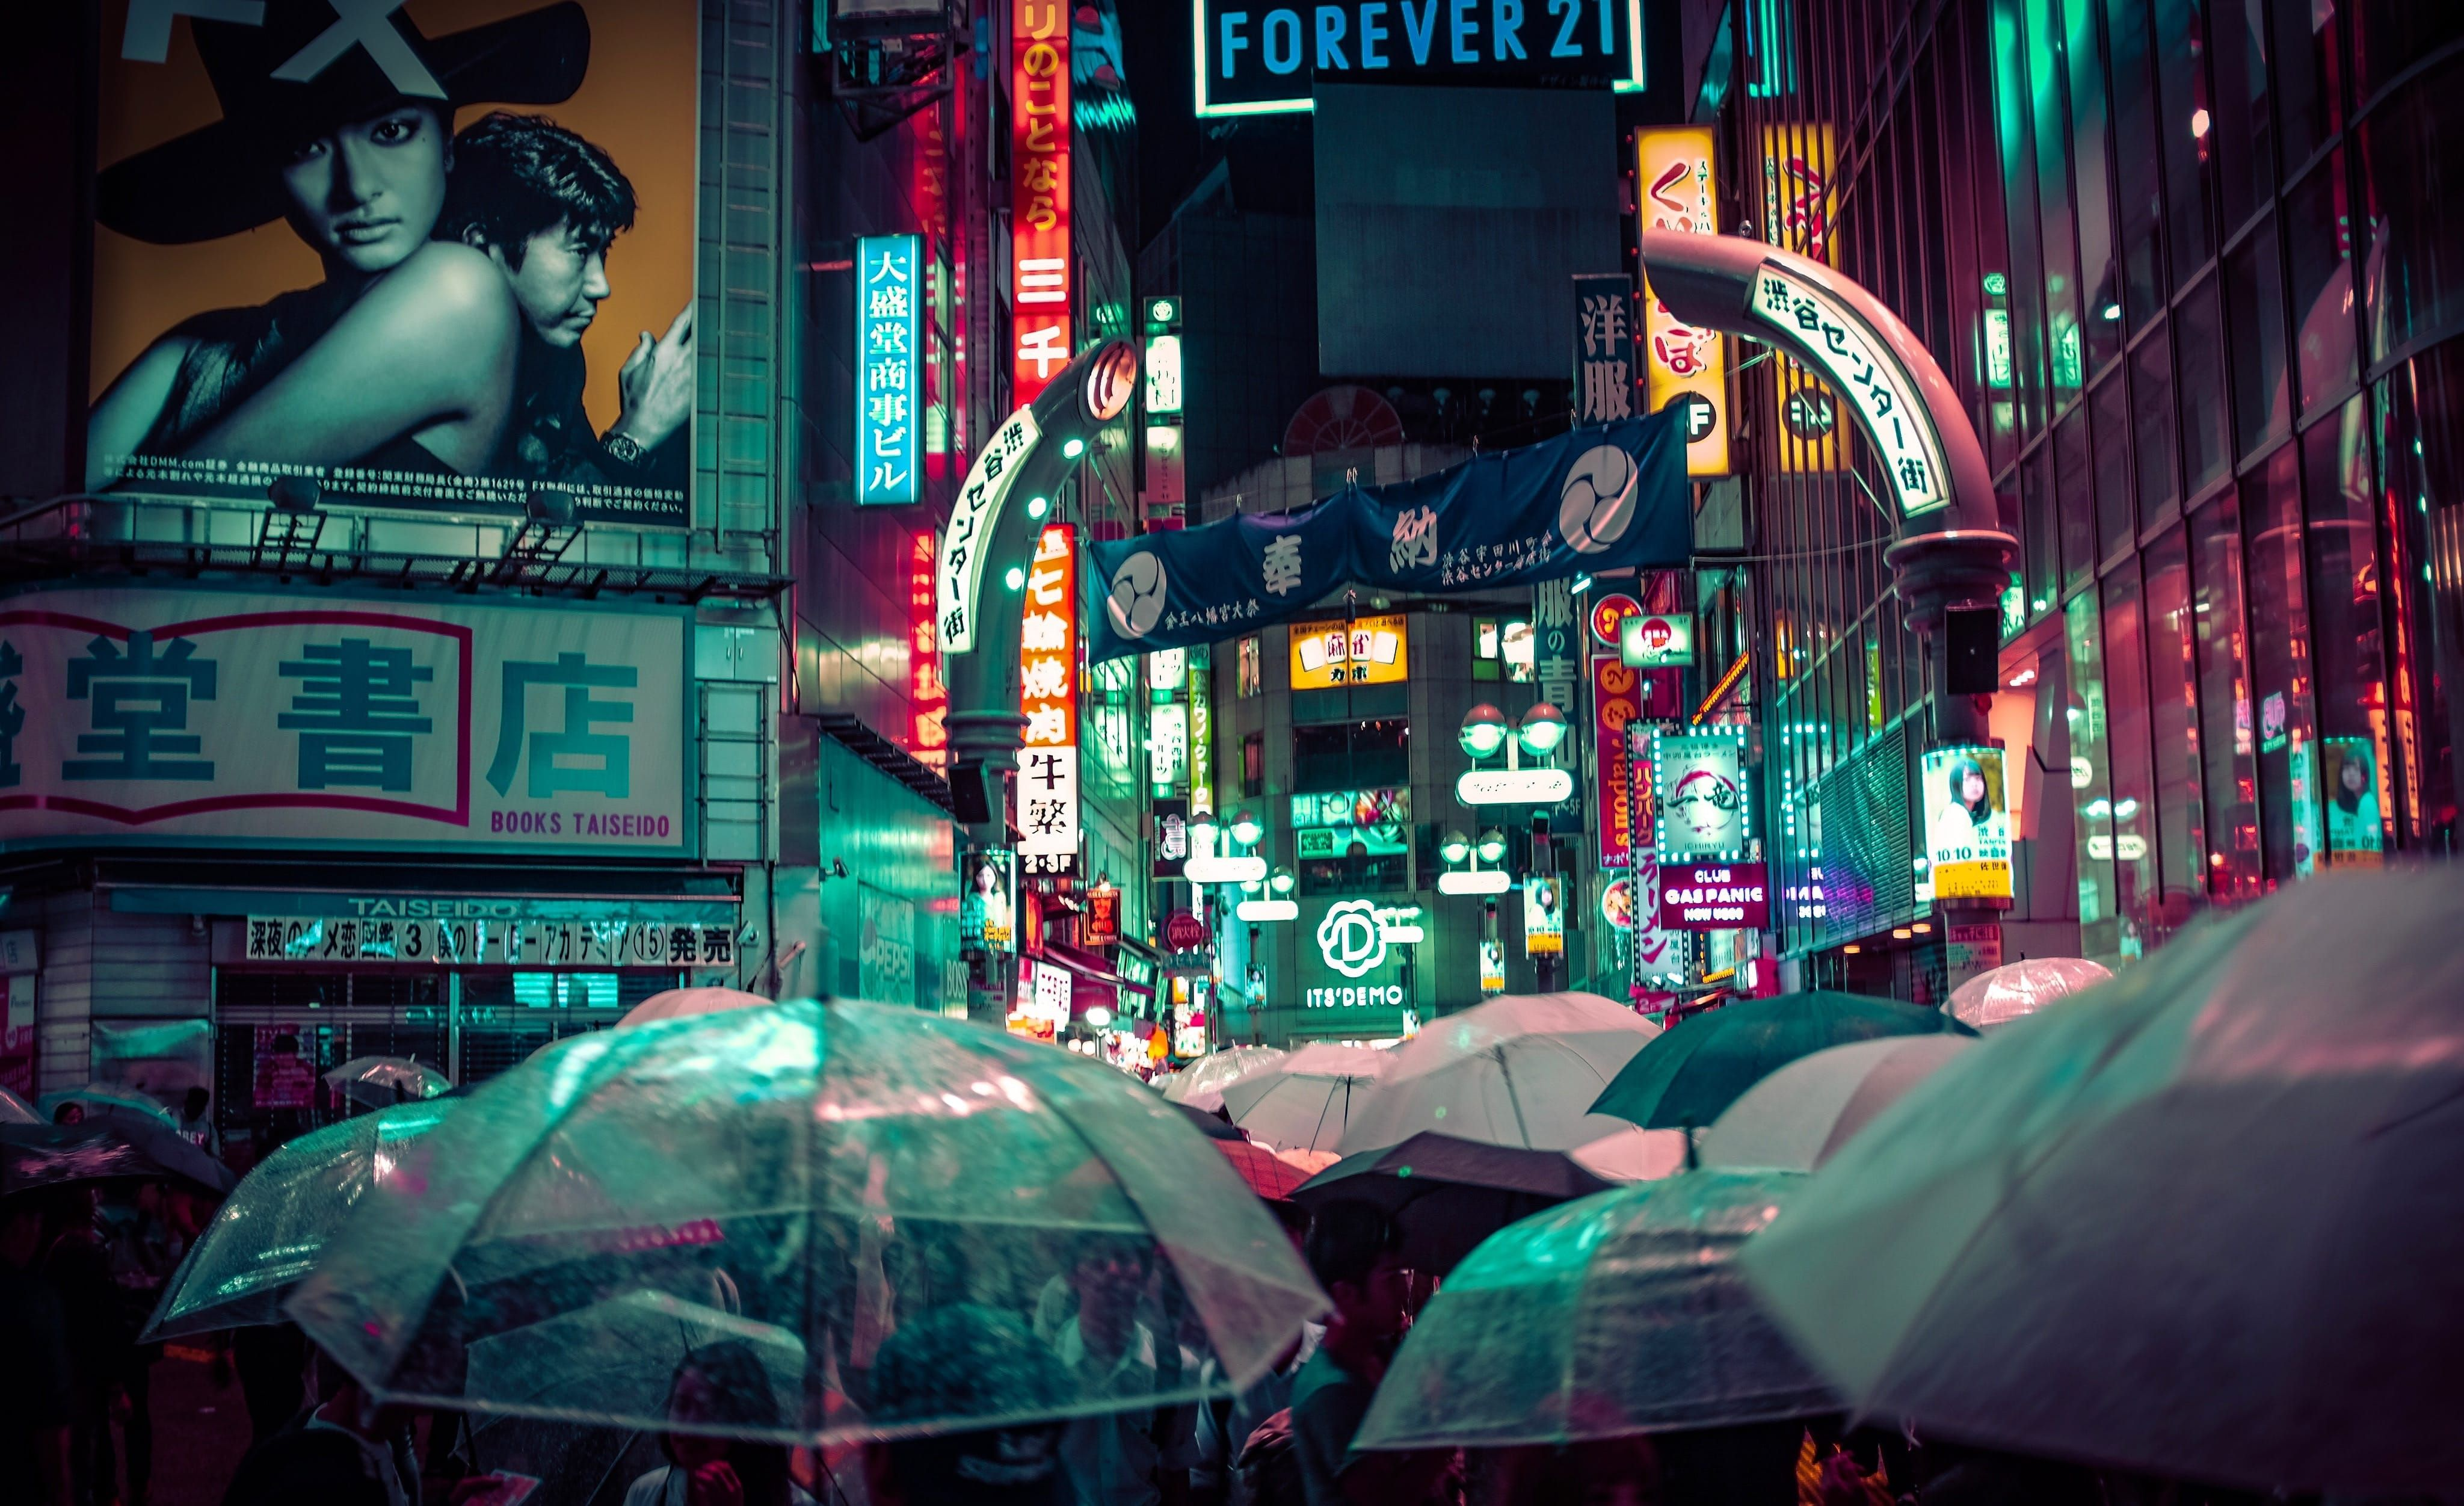 Umbrellas In Tokyo One Of The Best Cities To Visit In Japan Scenic Travel Travel Photos Japan Picture